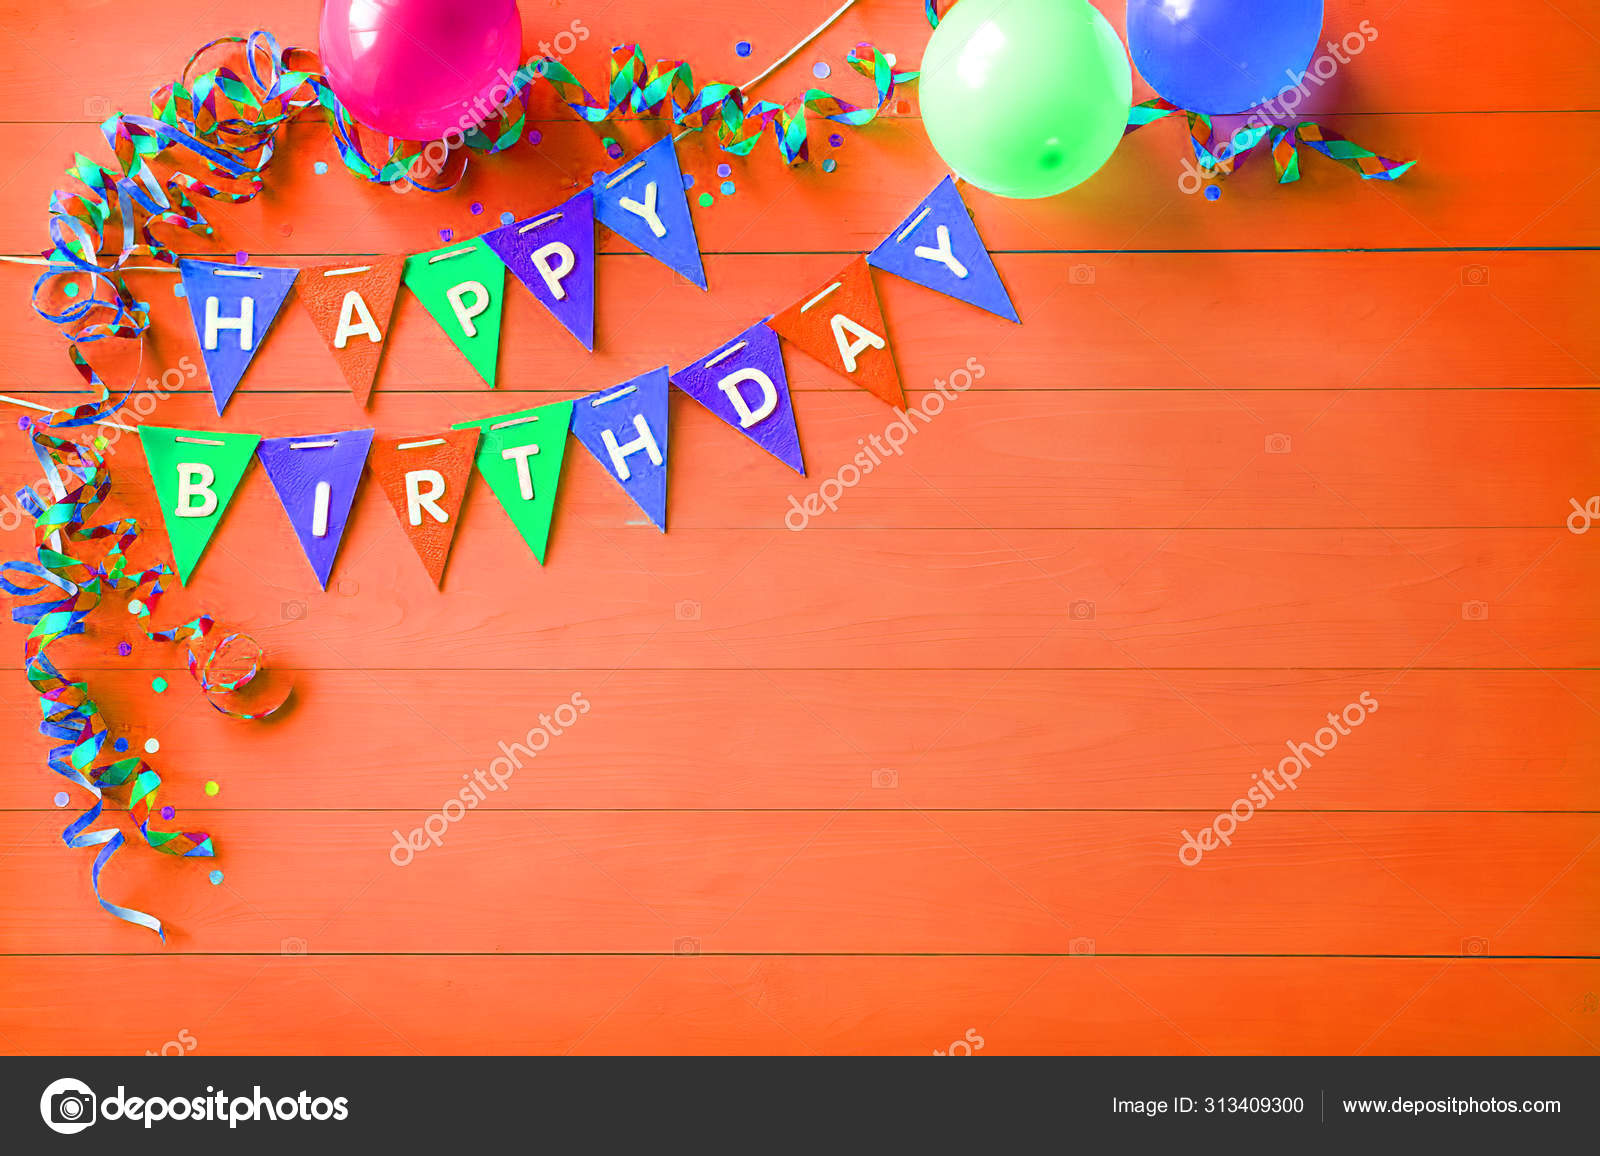 Happy Birthday Party Background With Text And Colorful Tools Stock Photo C Mastercreator 313409300